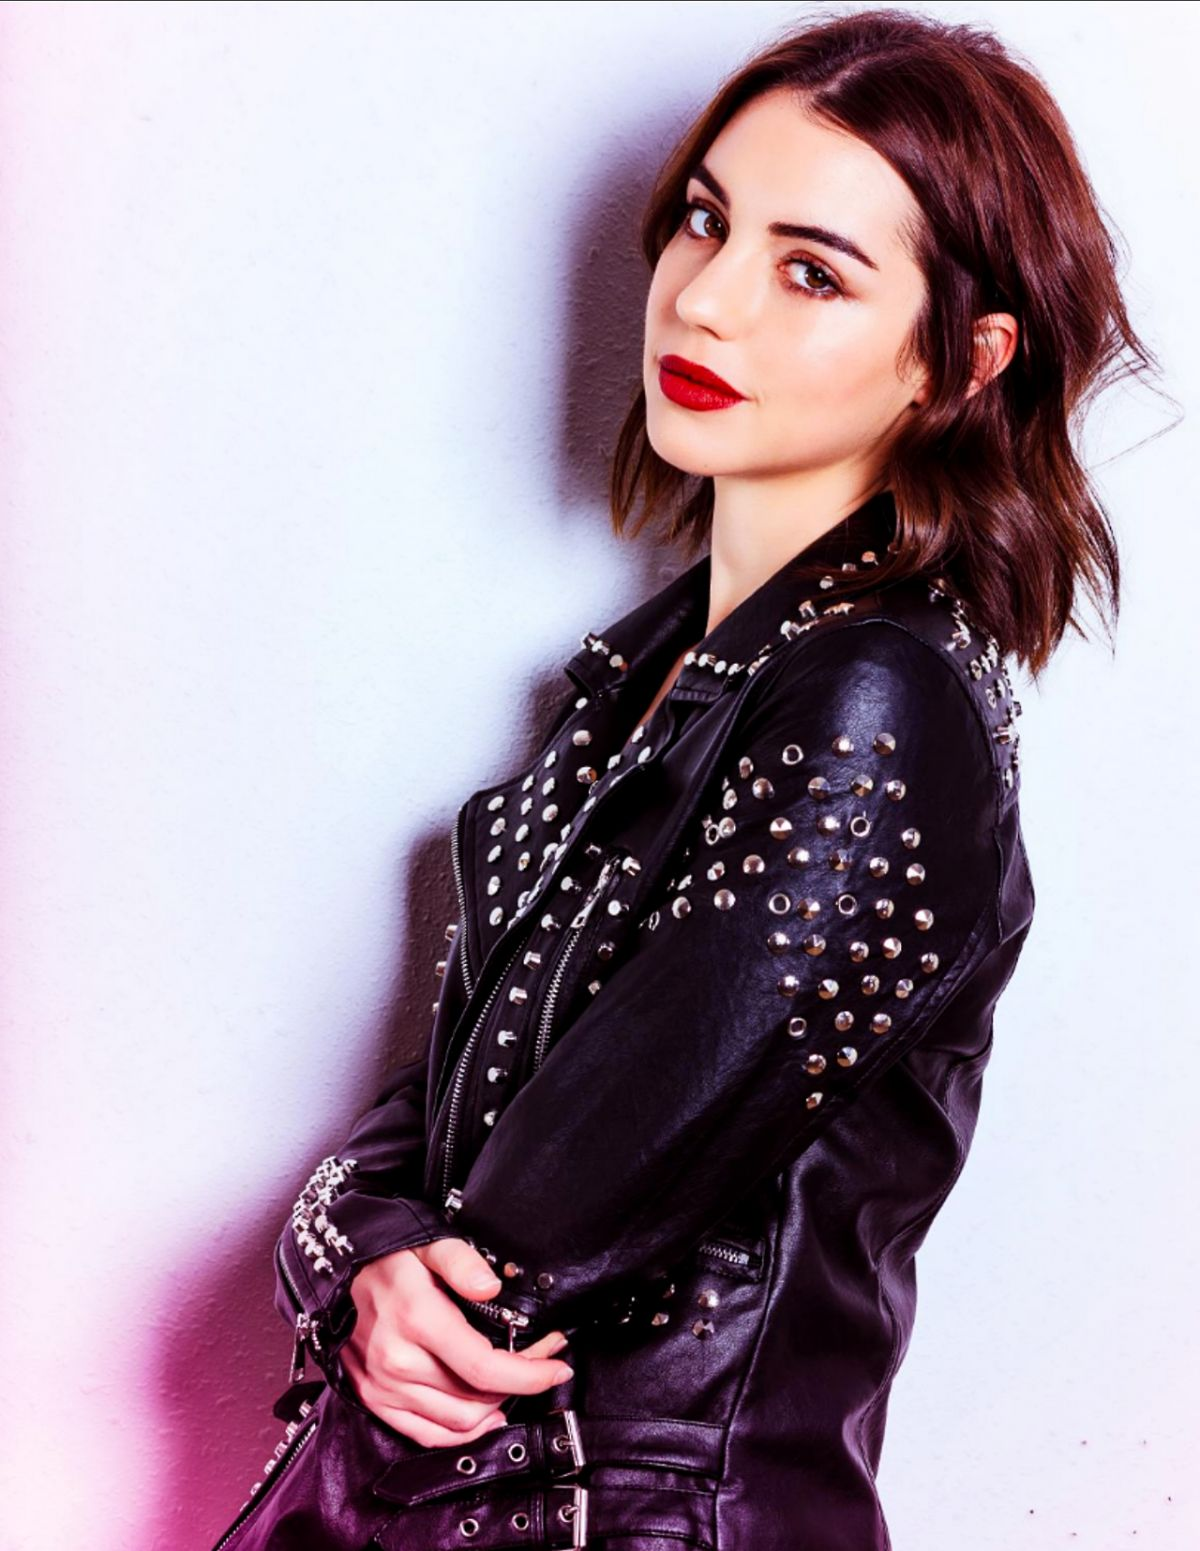 HD Photo Shoot of Adelaide Kane For NKD Magazine Issue 79 January 2018